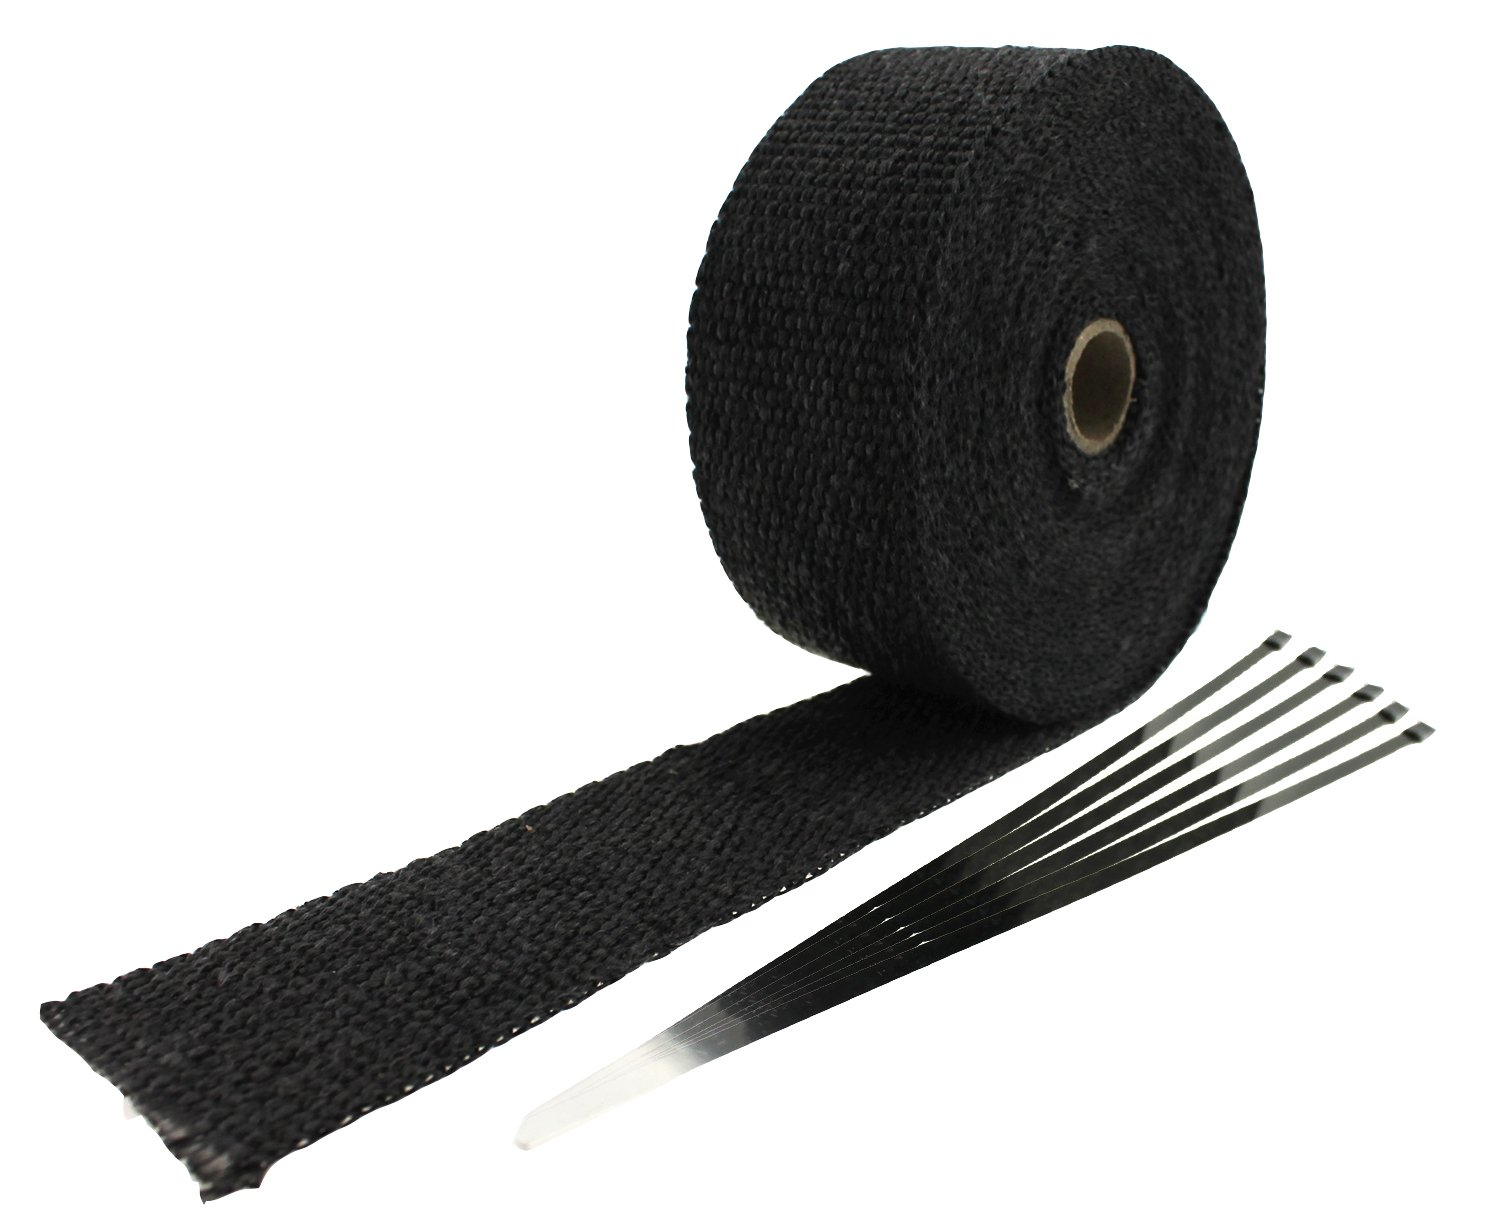 Black Ambuker 2 x 32.8 Exhaust Heat Wrap Roll for Motorcycle Fiberglass Heat Shield Tape with 6 Stainless Ties